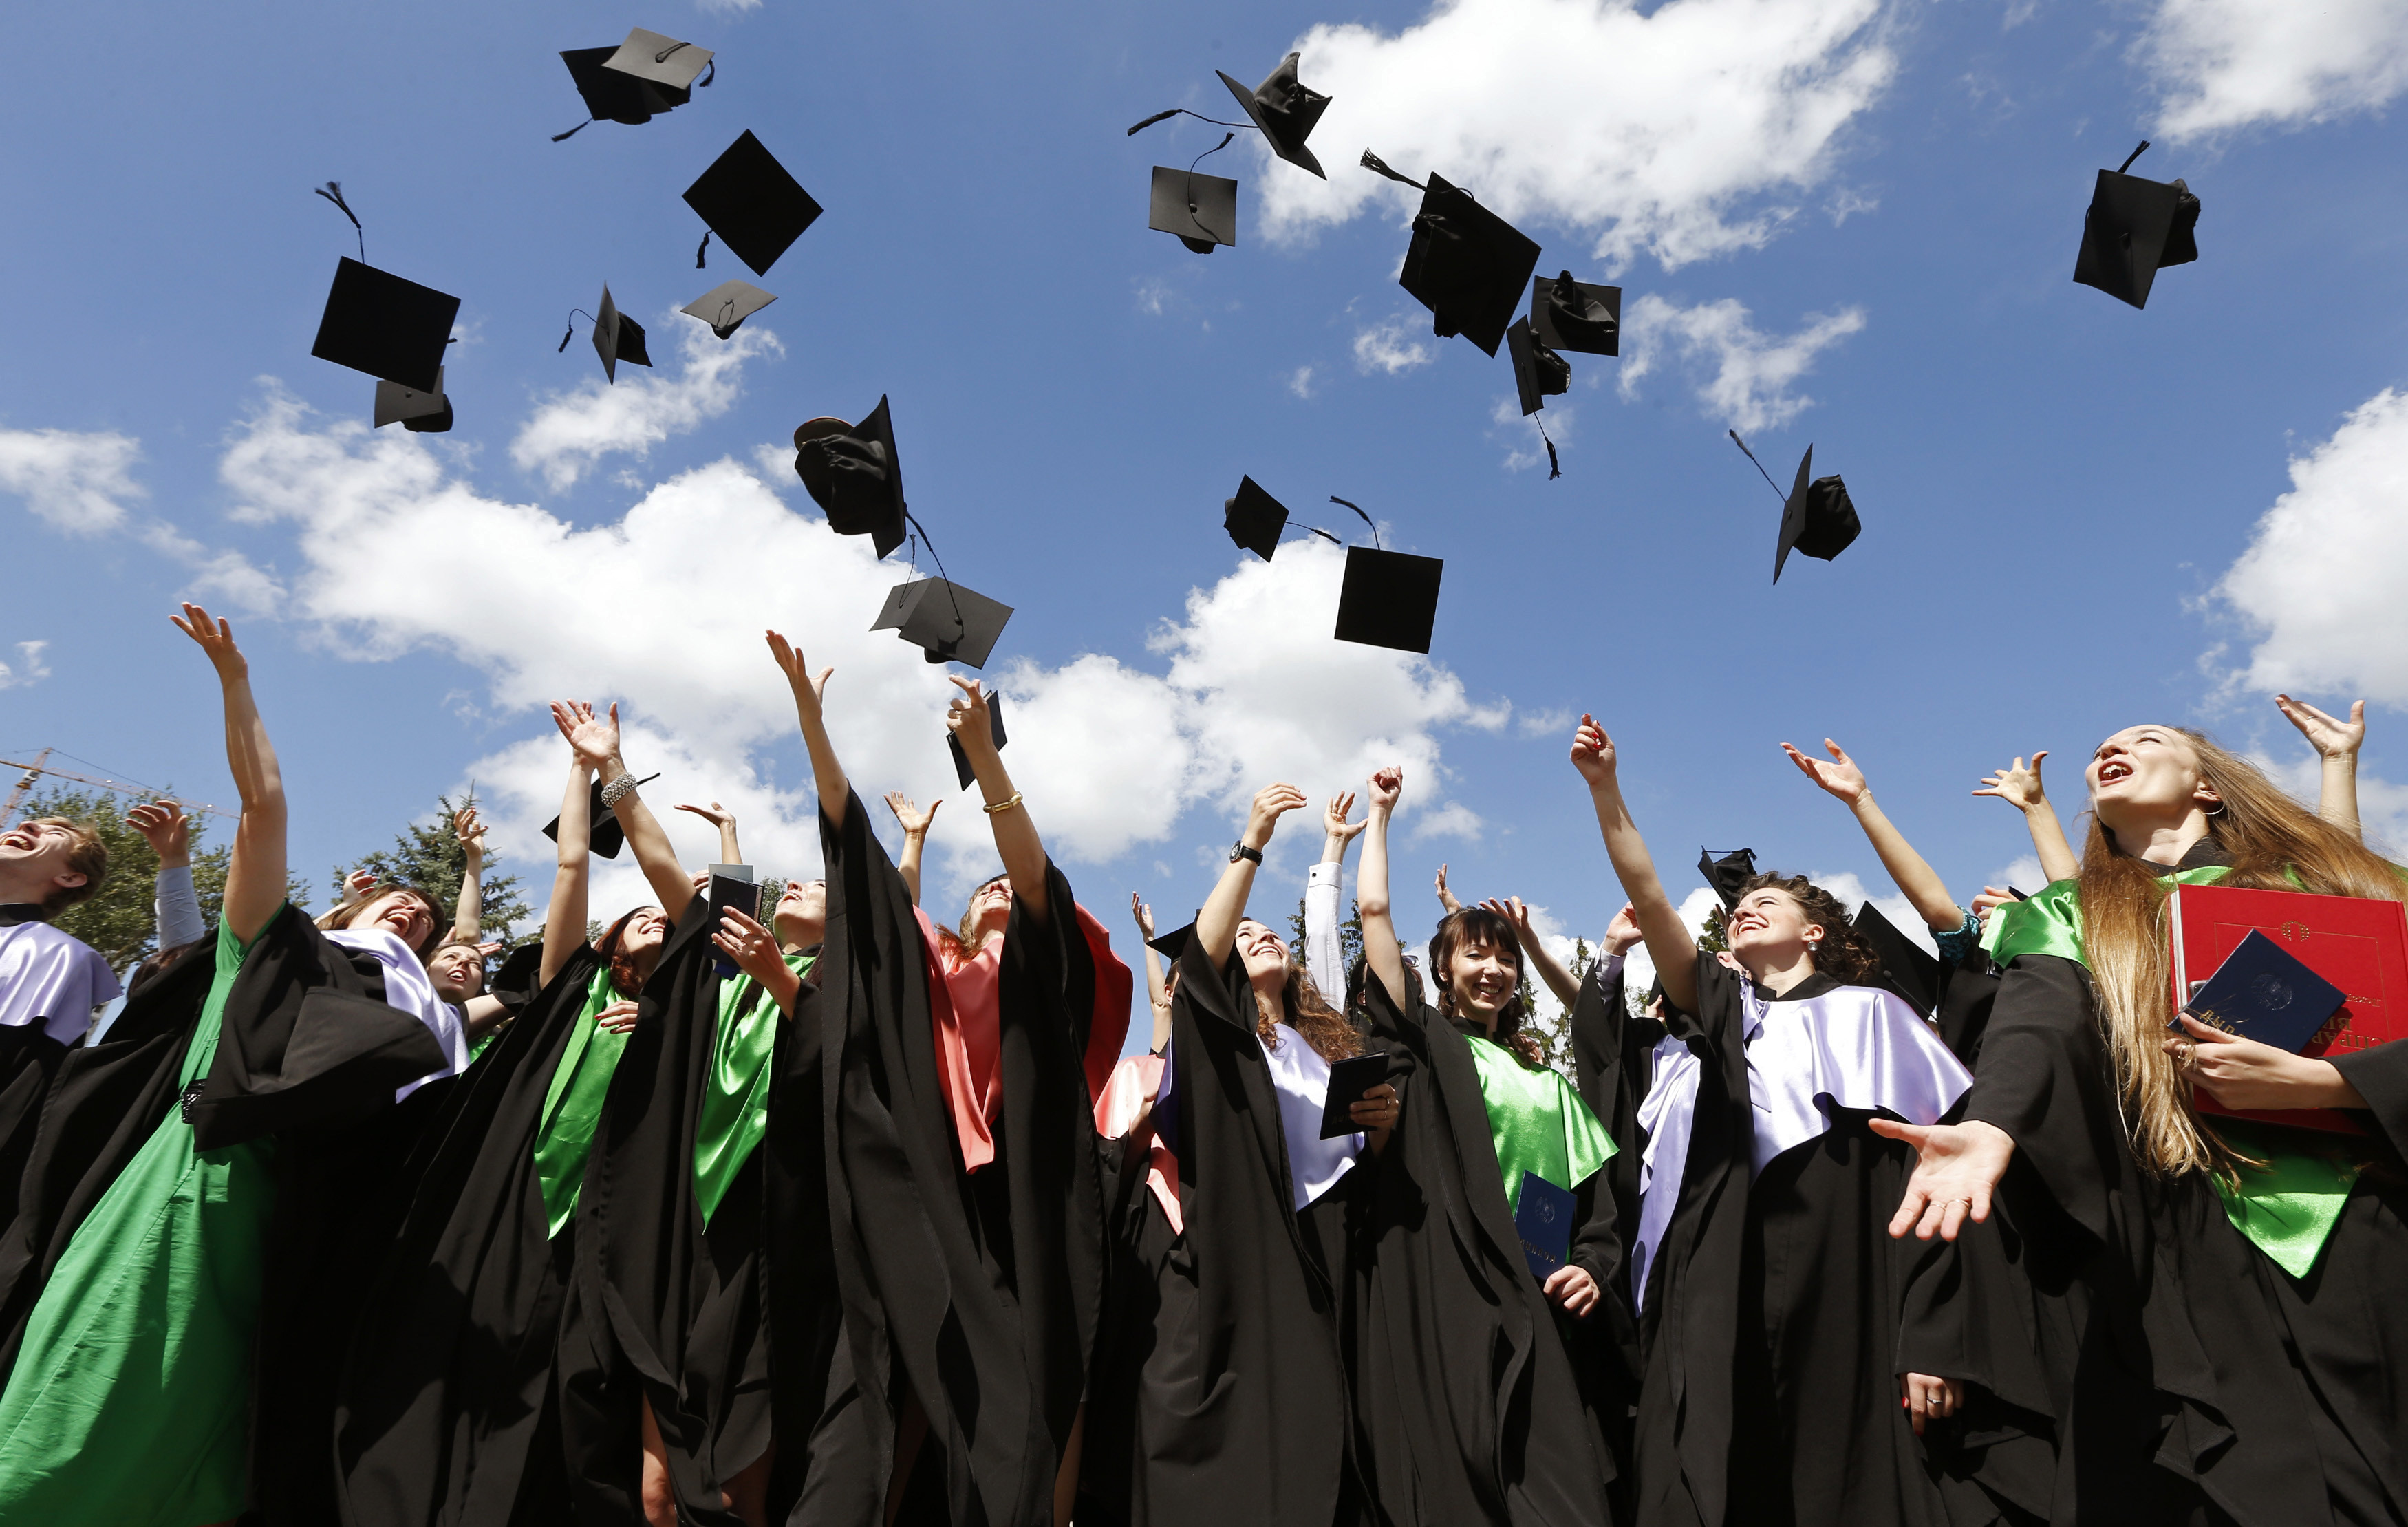 Medical University graduates throw up mortarboards during the celebration of their graduation in Minsk, June 27, 2014